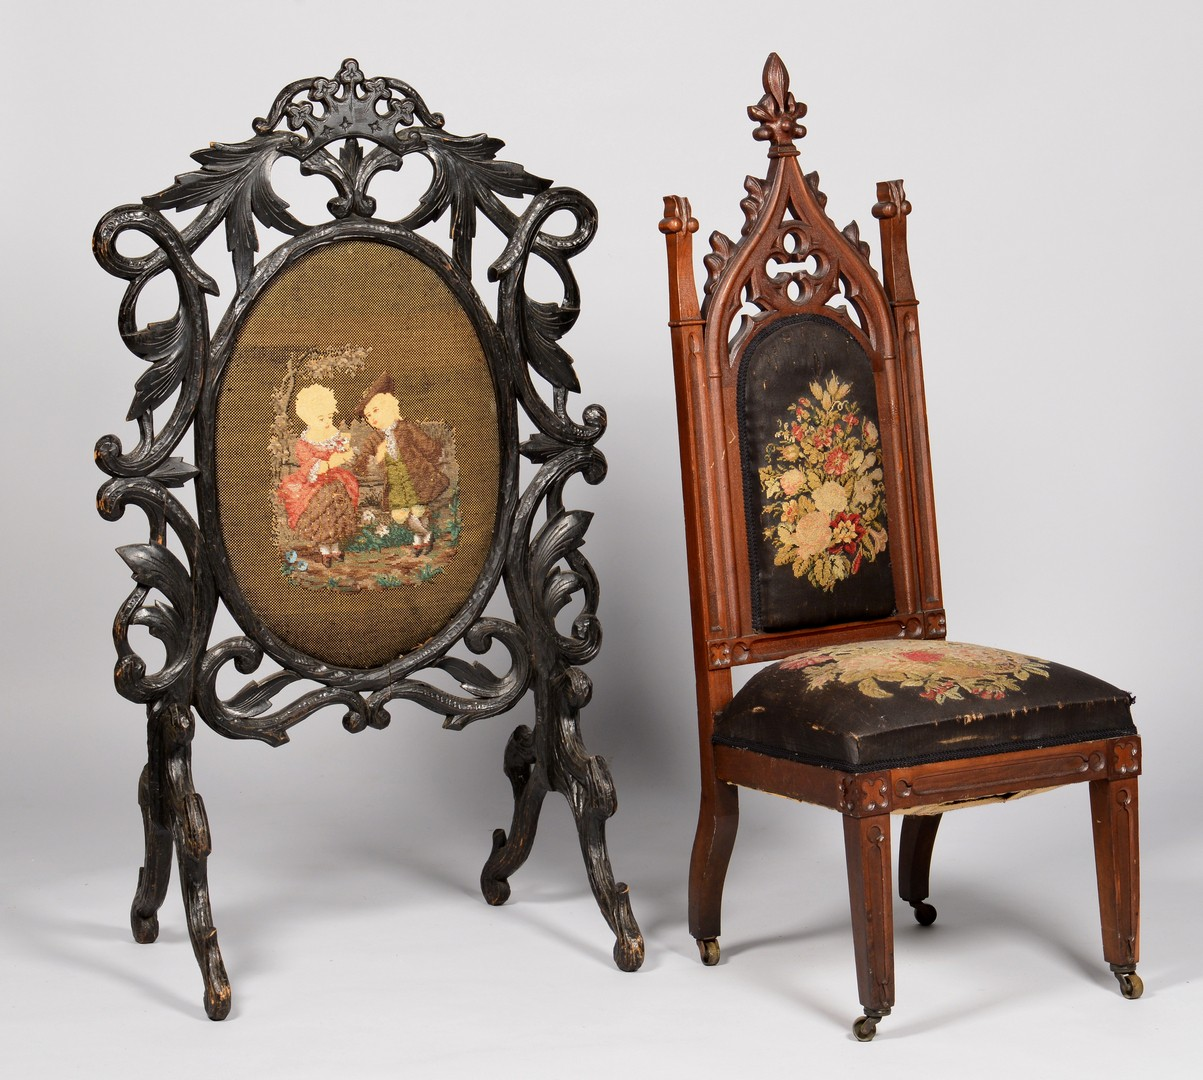 Lot 709 2 American Gothic Furniture Items Chair Screen